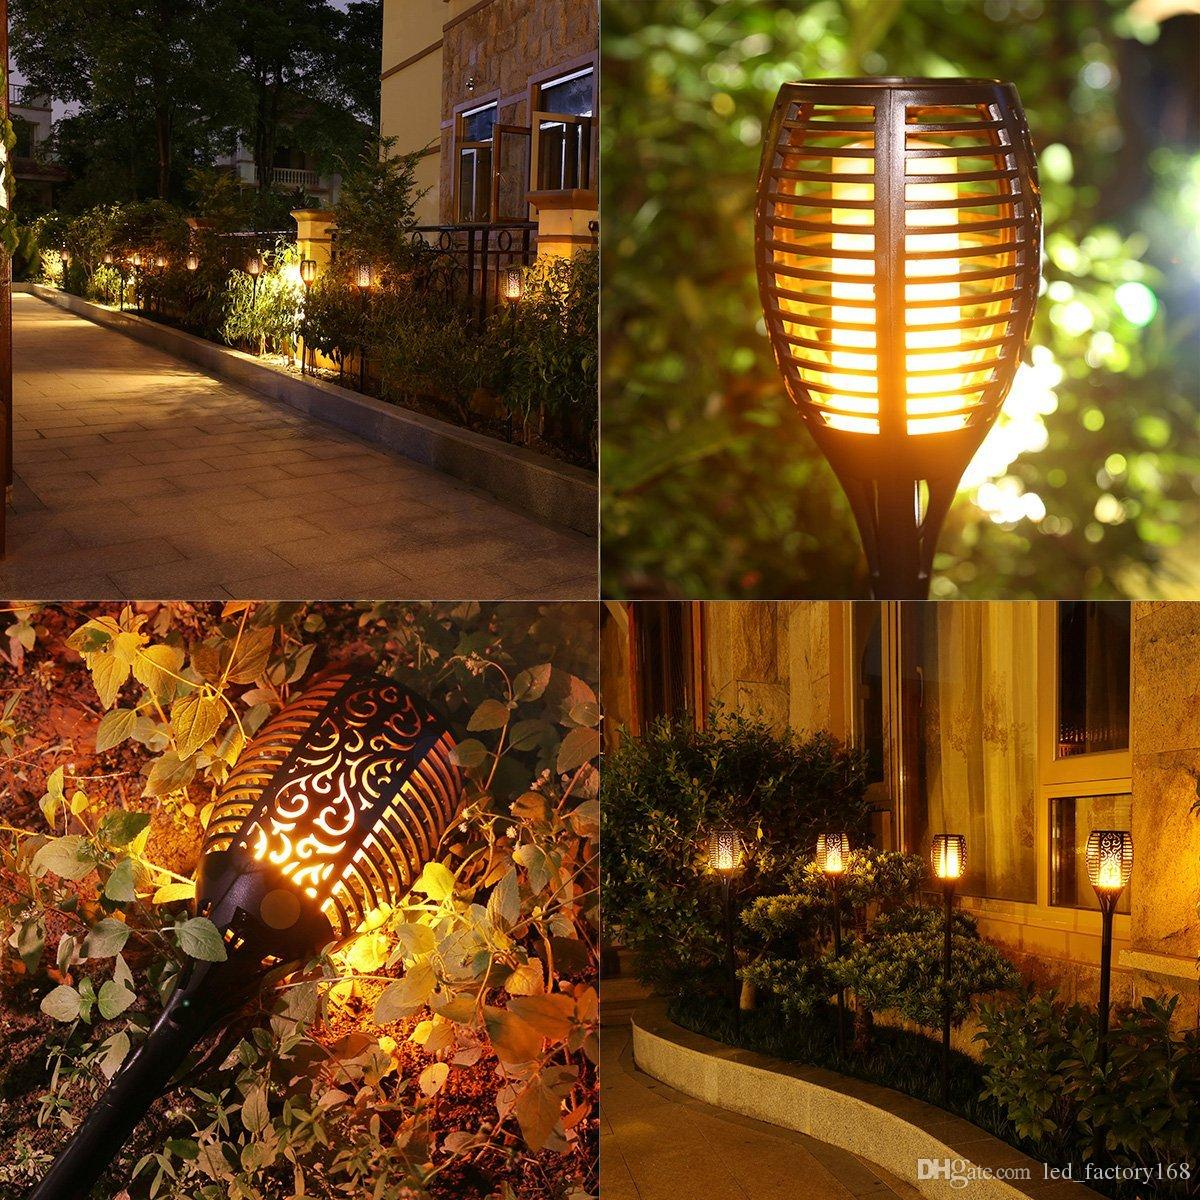 Hot Sale Solar Lights Dancing Flames LED Waterproof Wireless Flickering Torches Lantern Outdoor for Garden Patio Yard Driveway Pathway Pool